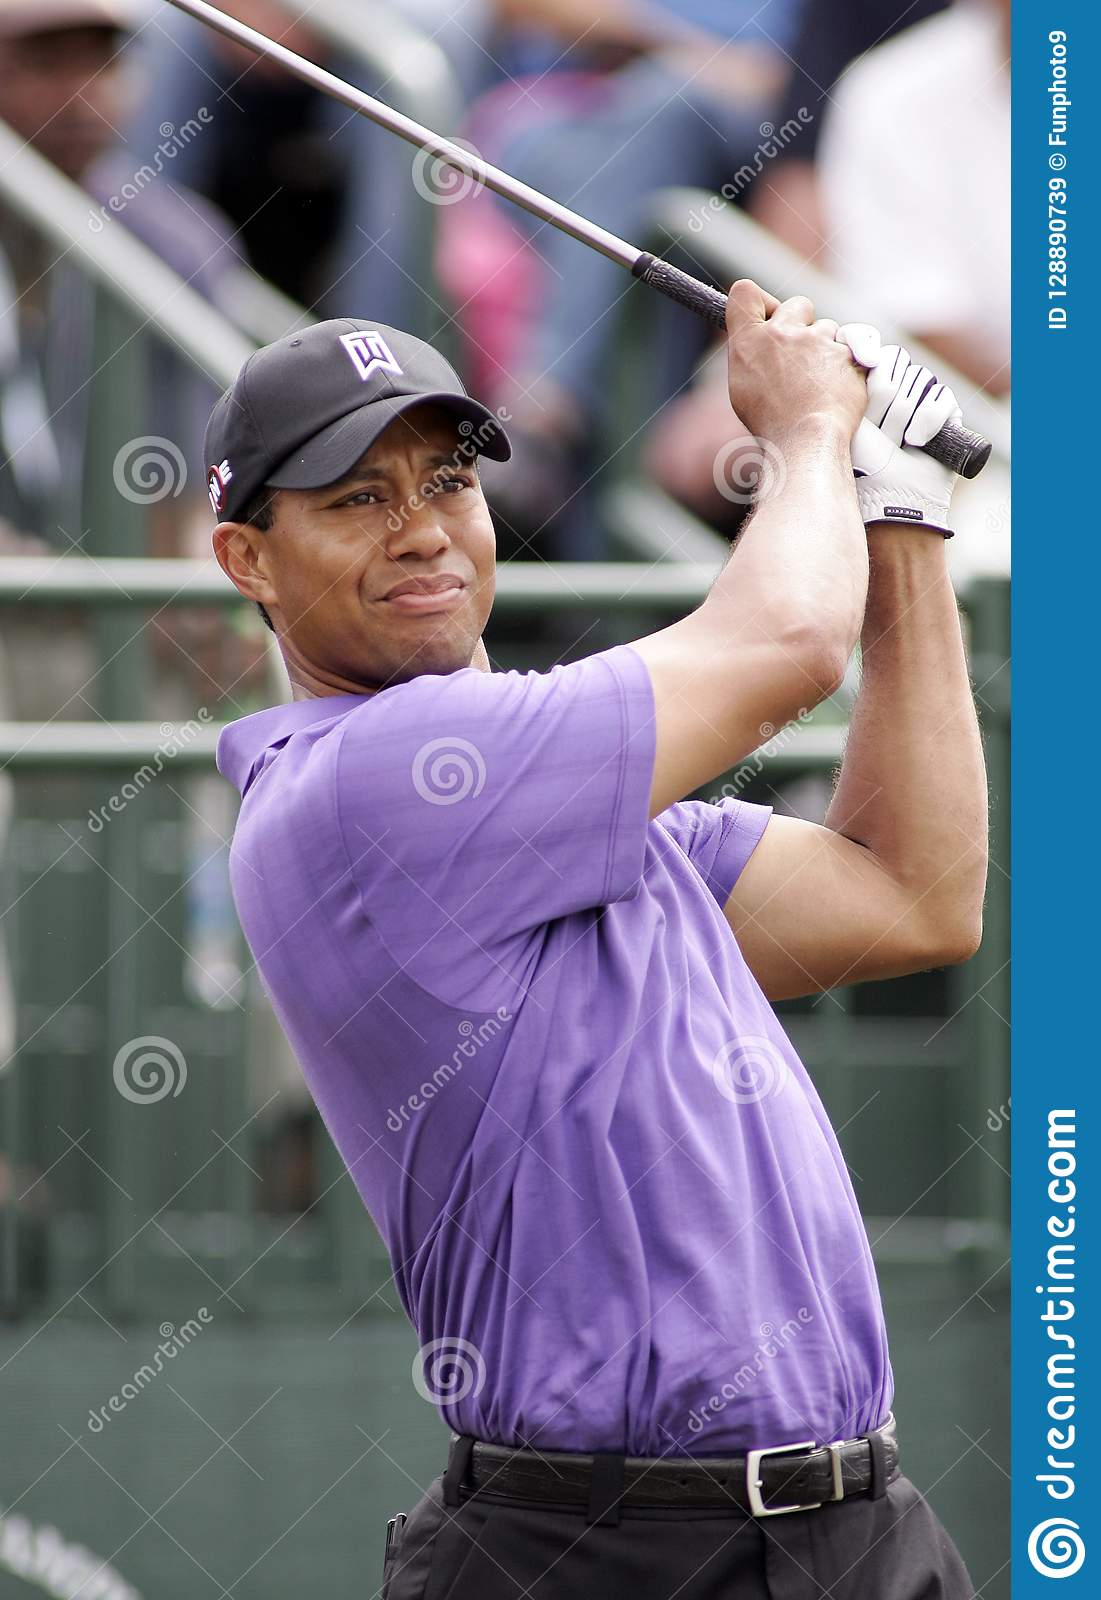 Tiger Woods przy Doral w Miami